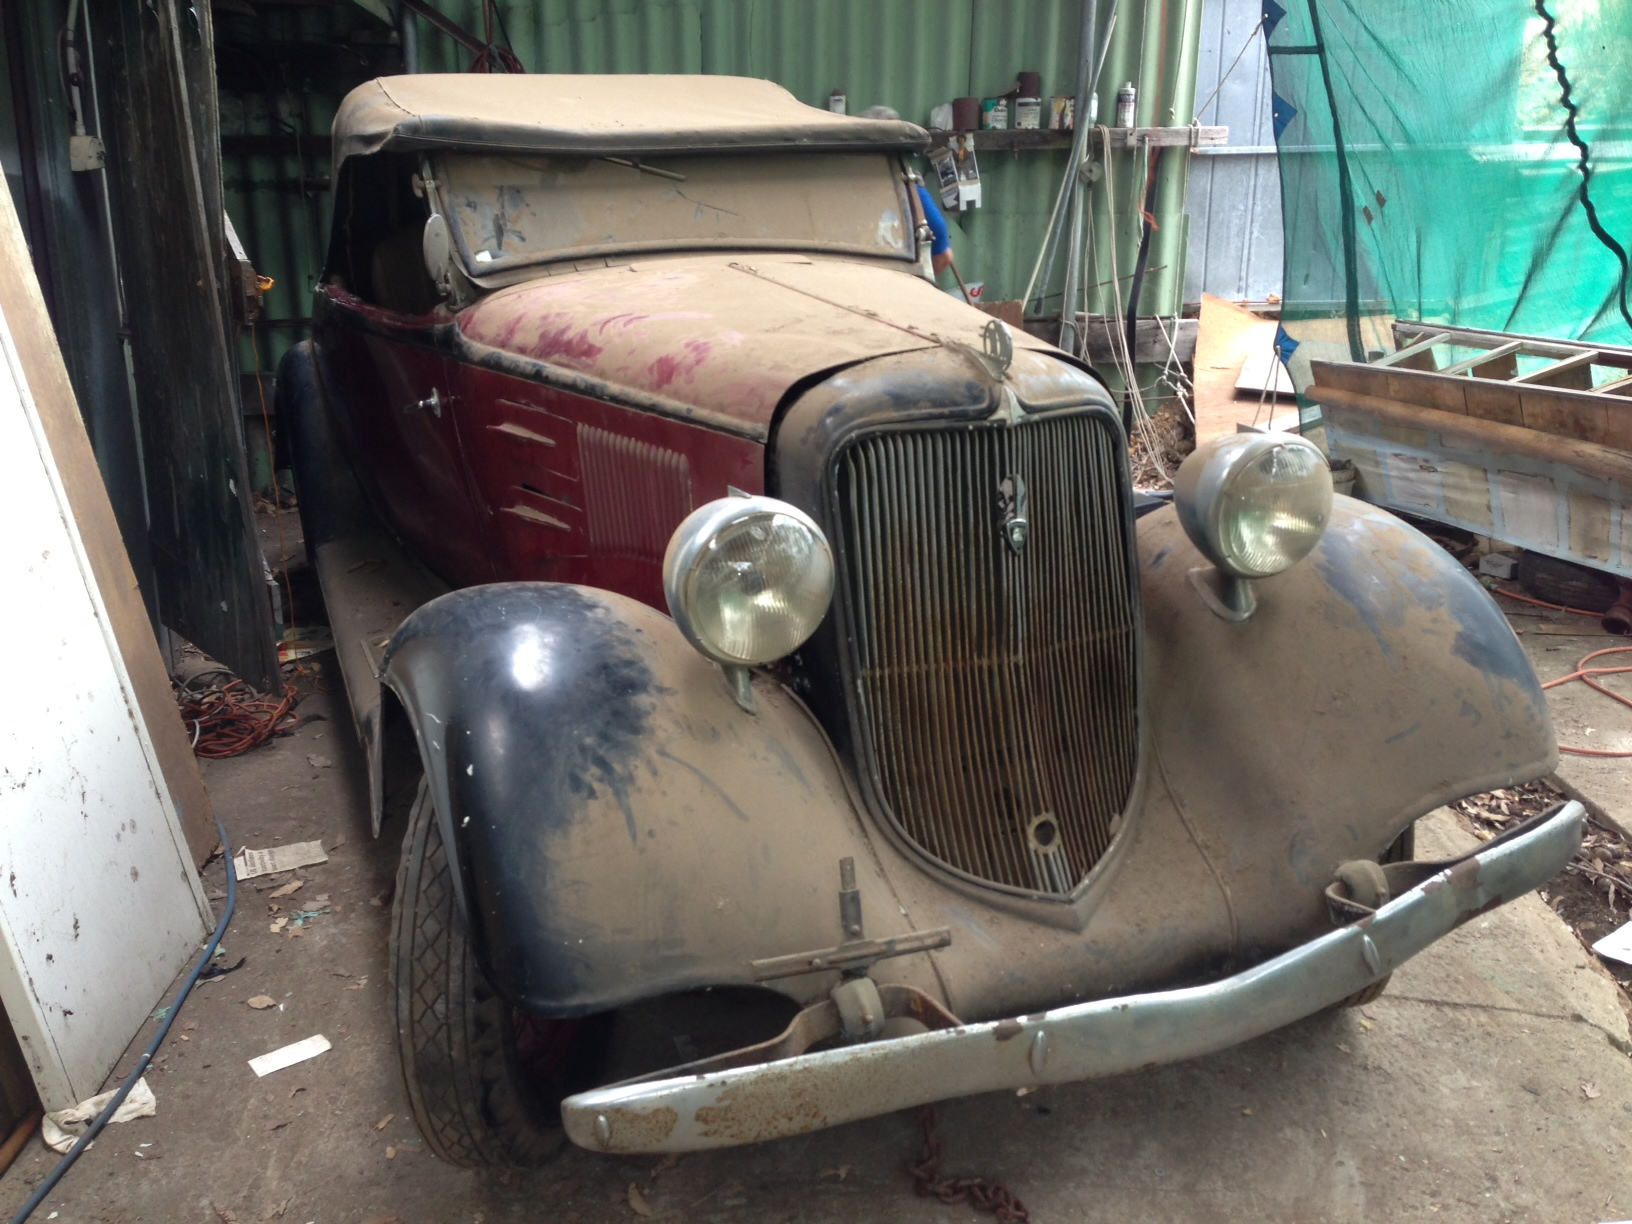 barn find from luke anderson in south australia hotrod hotline. Black Bedroom Furniture Sets. Home Design Ideas